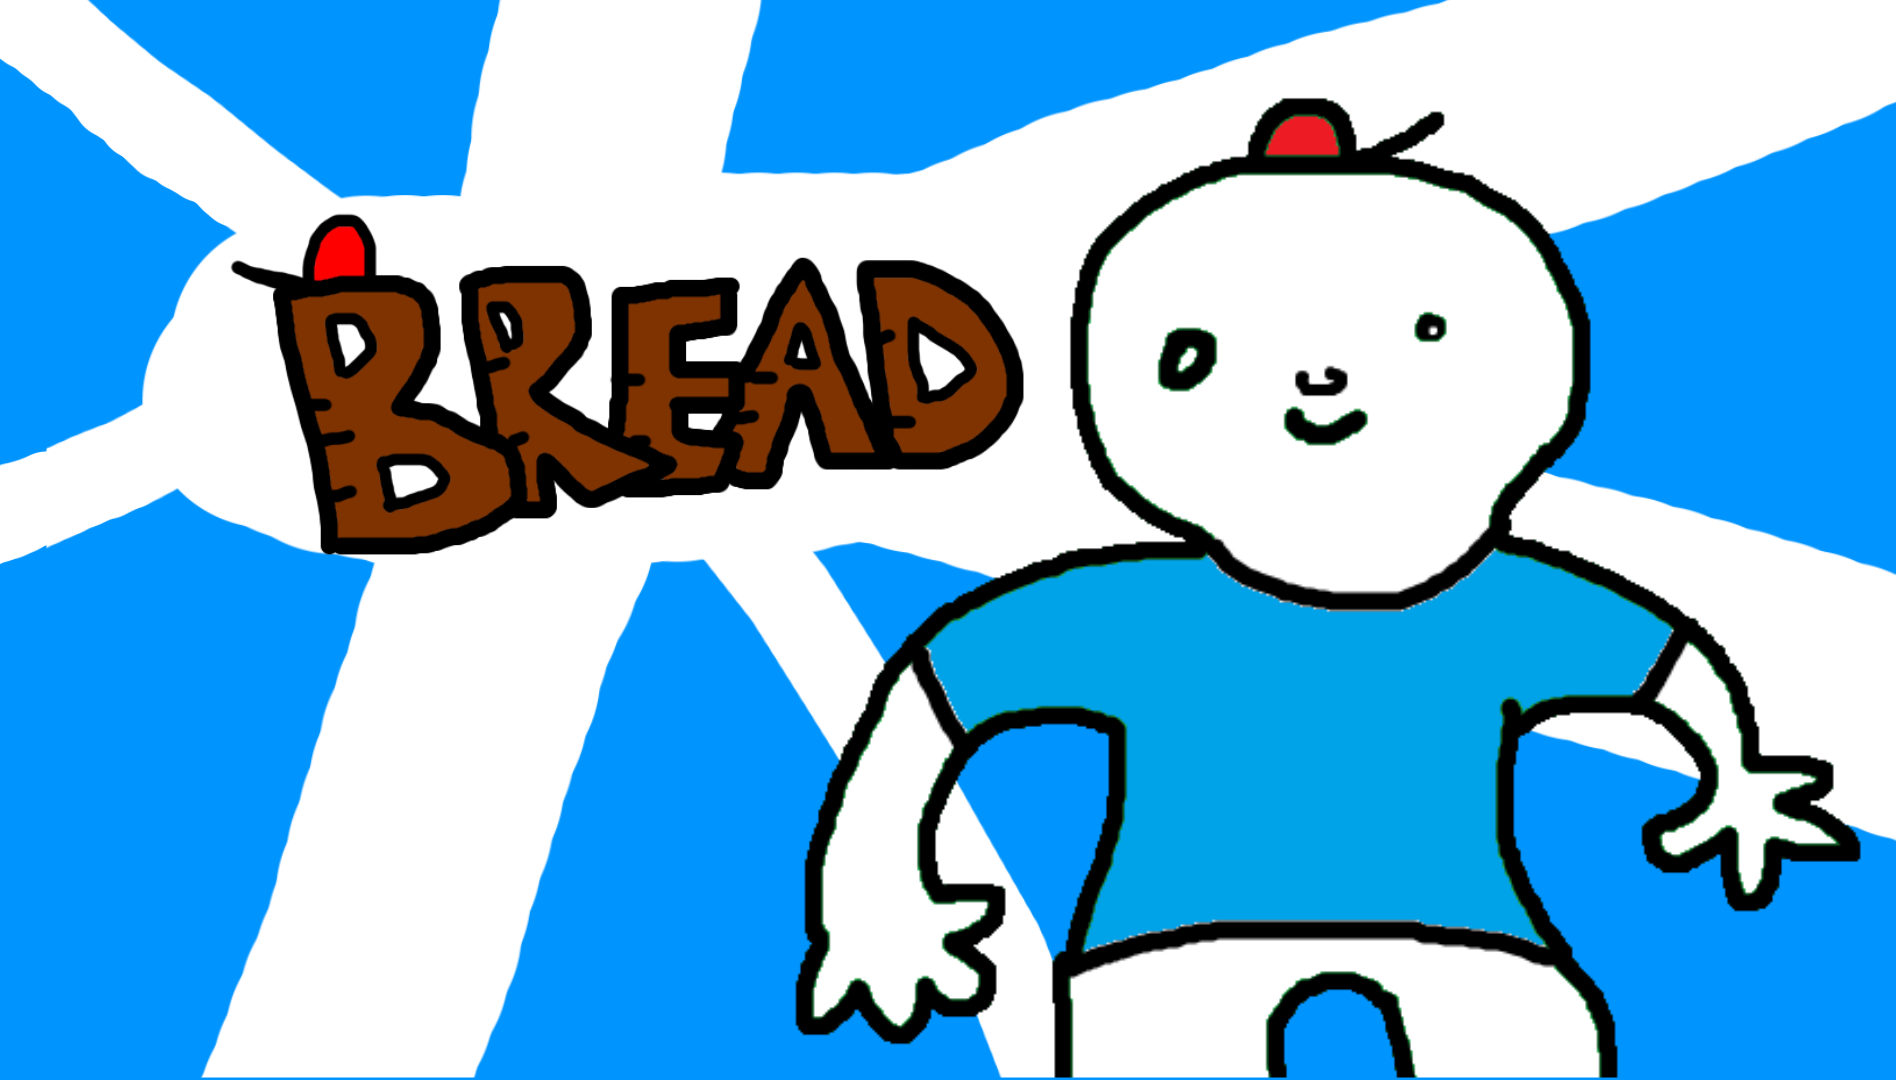 """BREAD"" - A First Person Adventure Story Game"